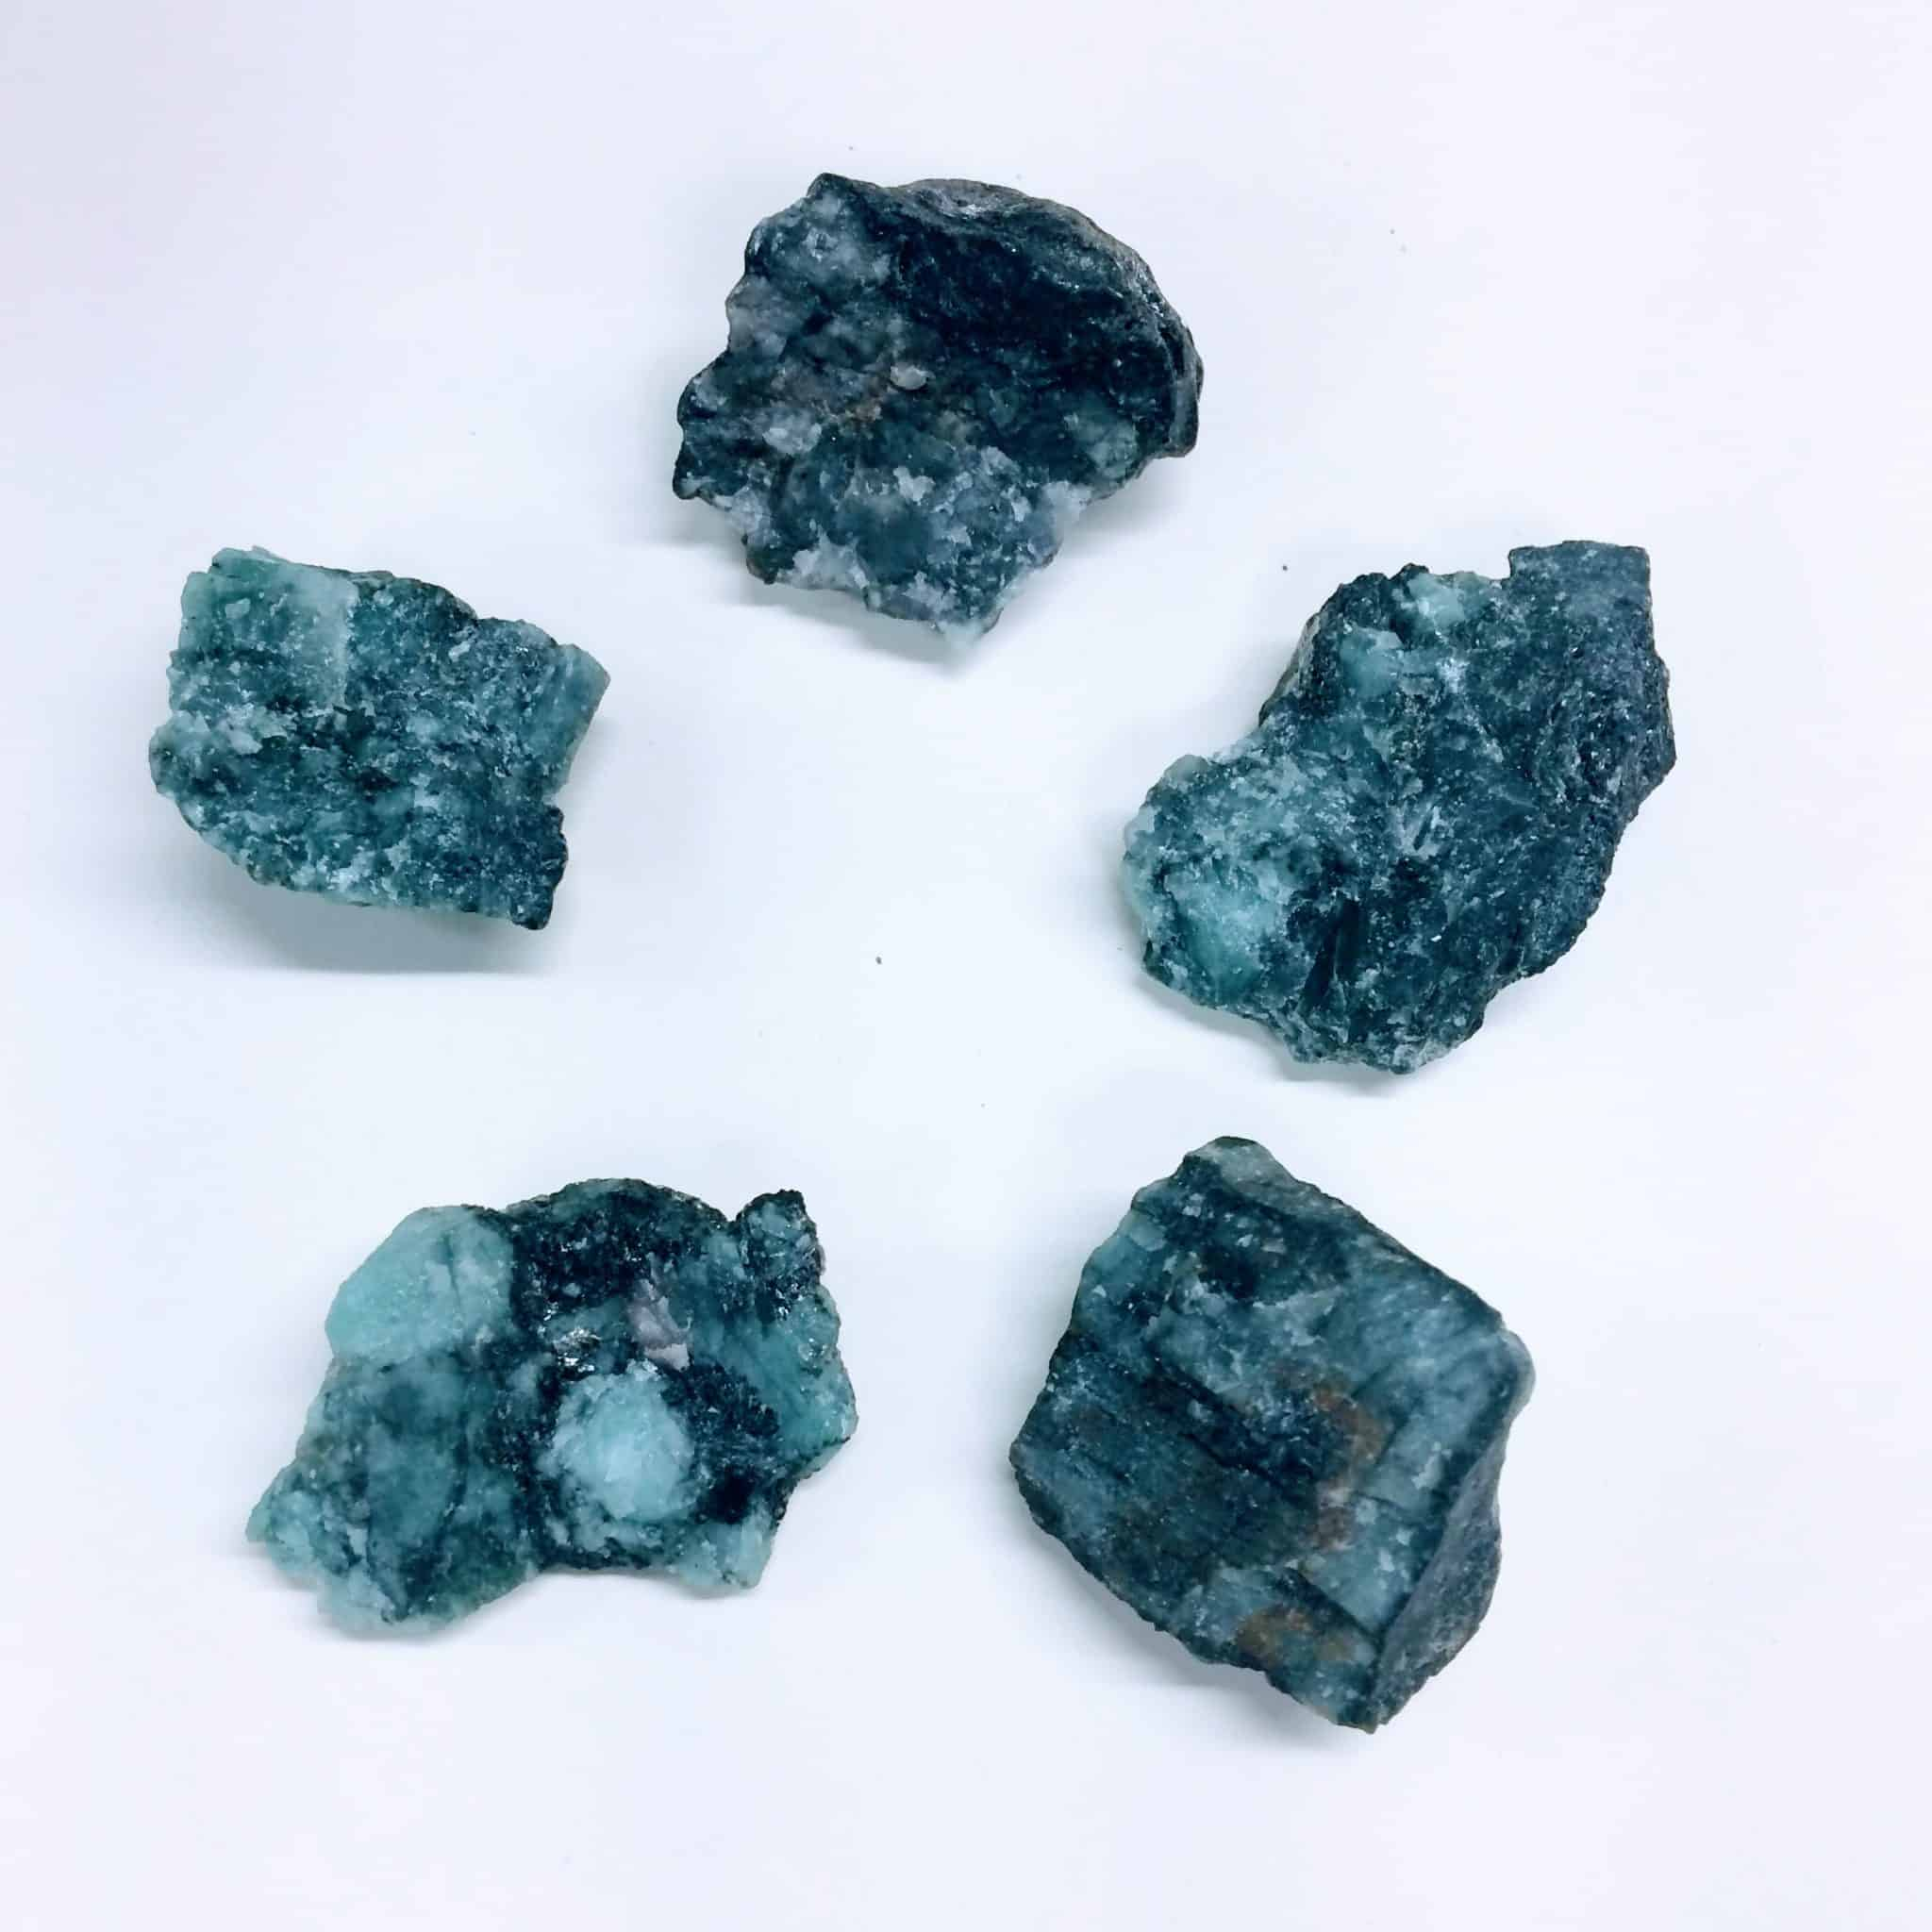 crystals inspirit emerald product rough specimens specimen blue img